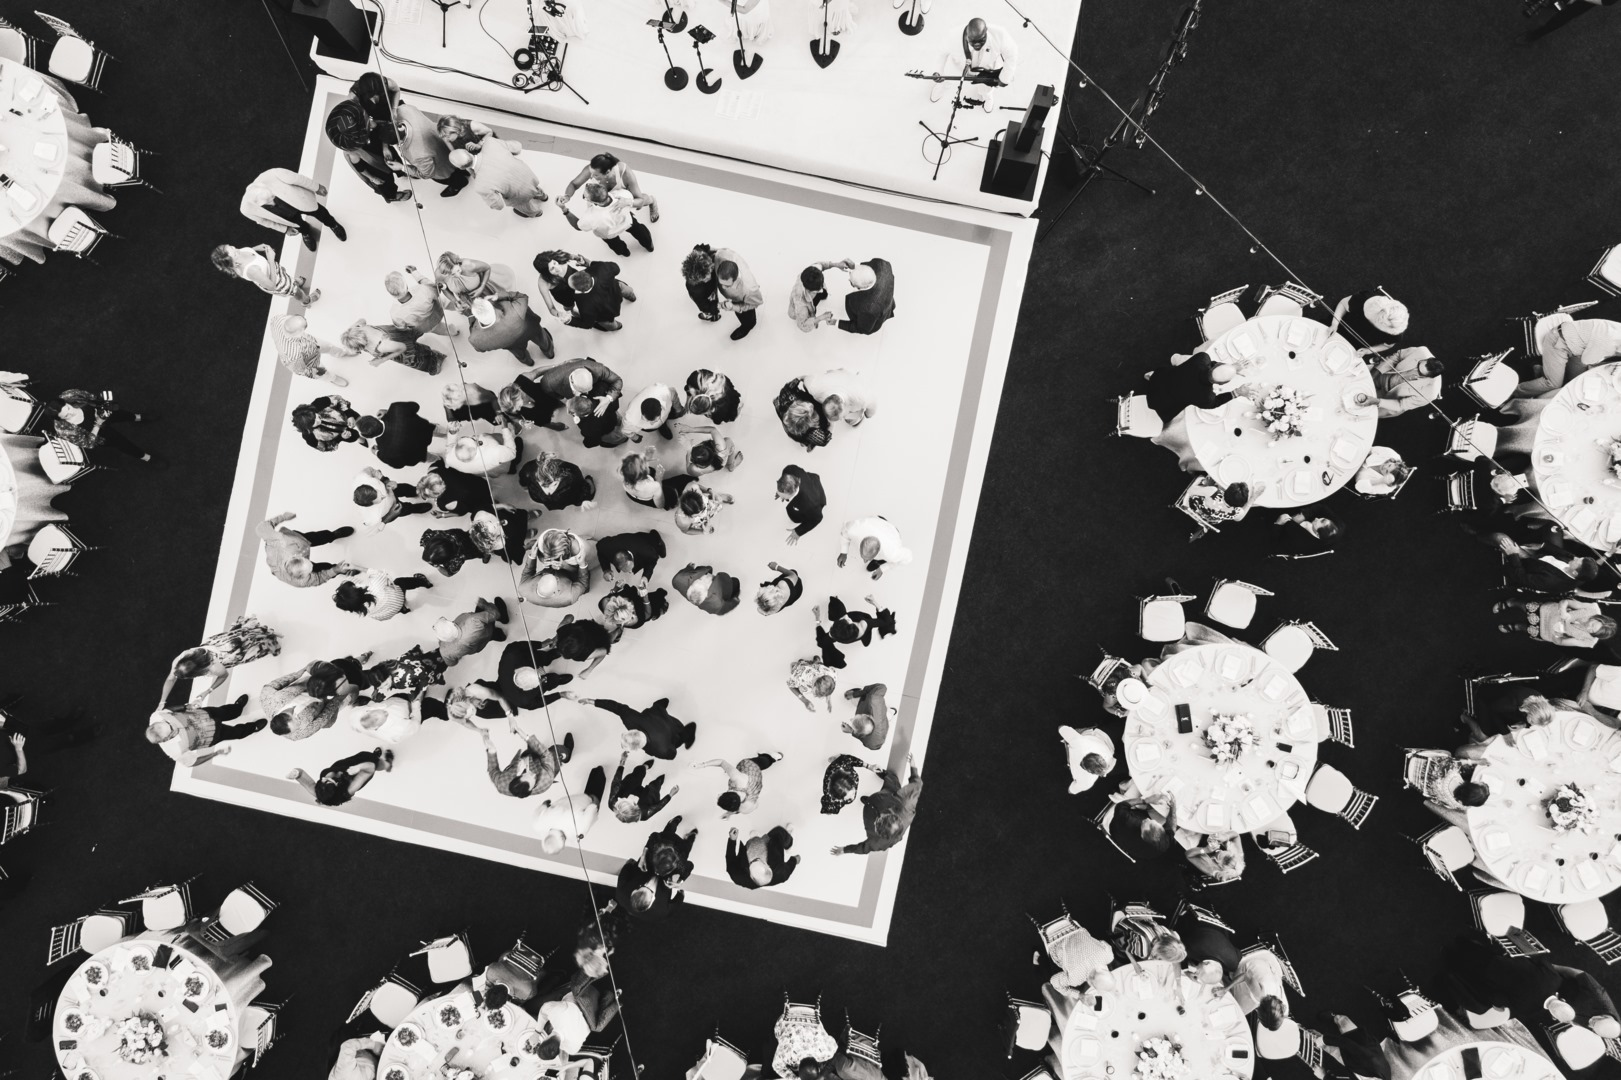 Aerial photograph of a dance floor during the wedding reception